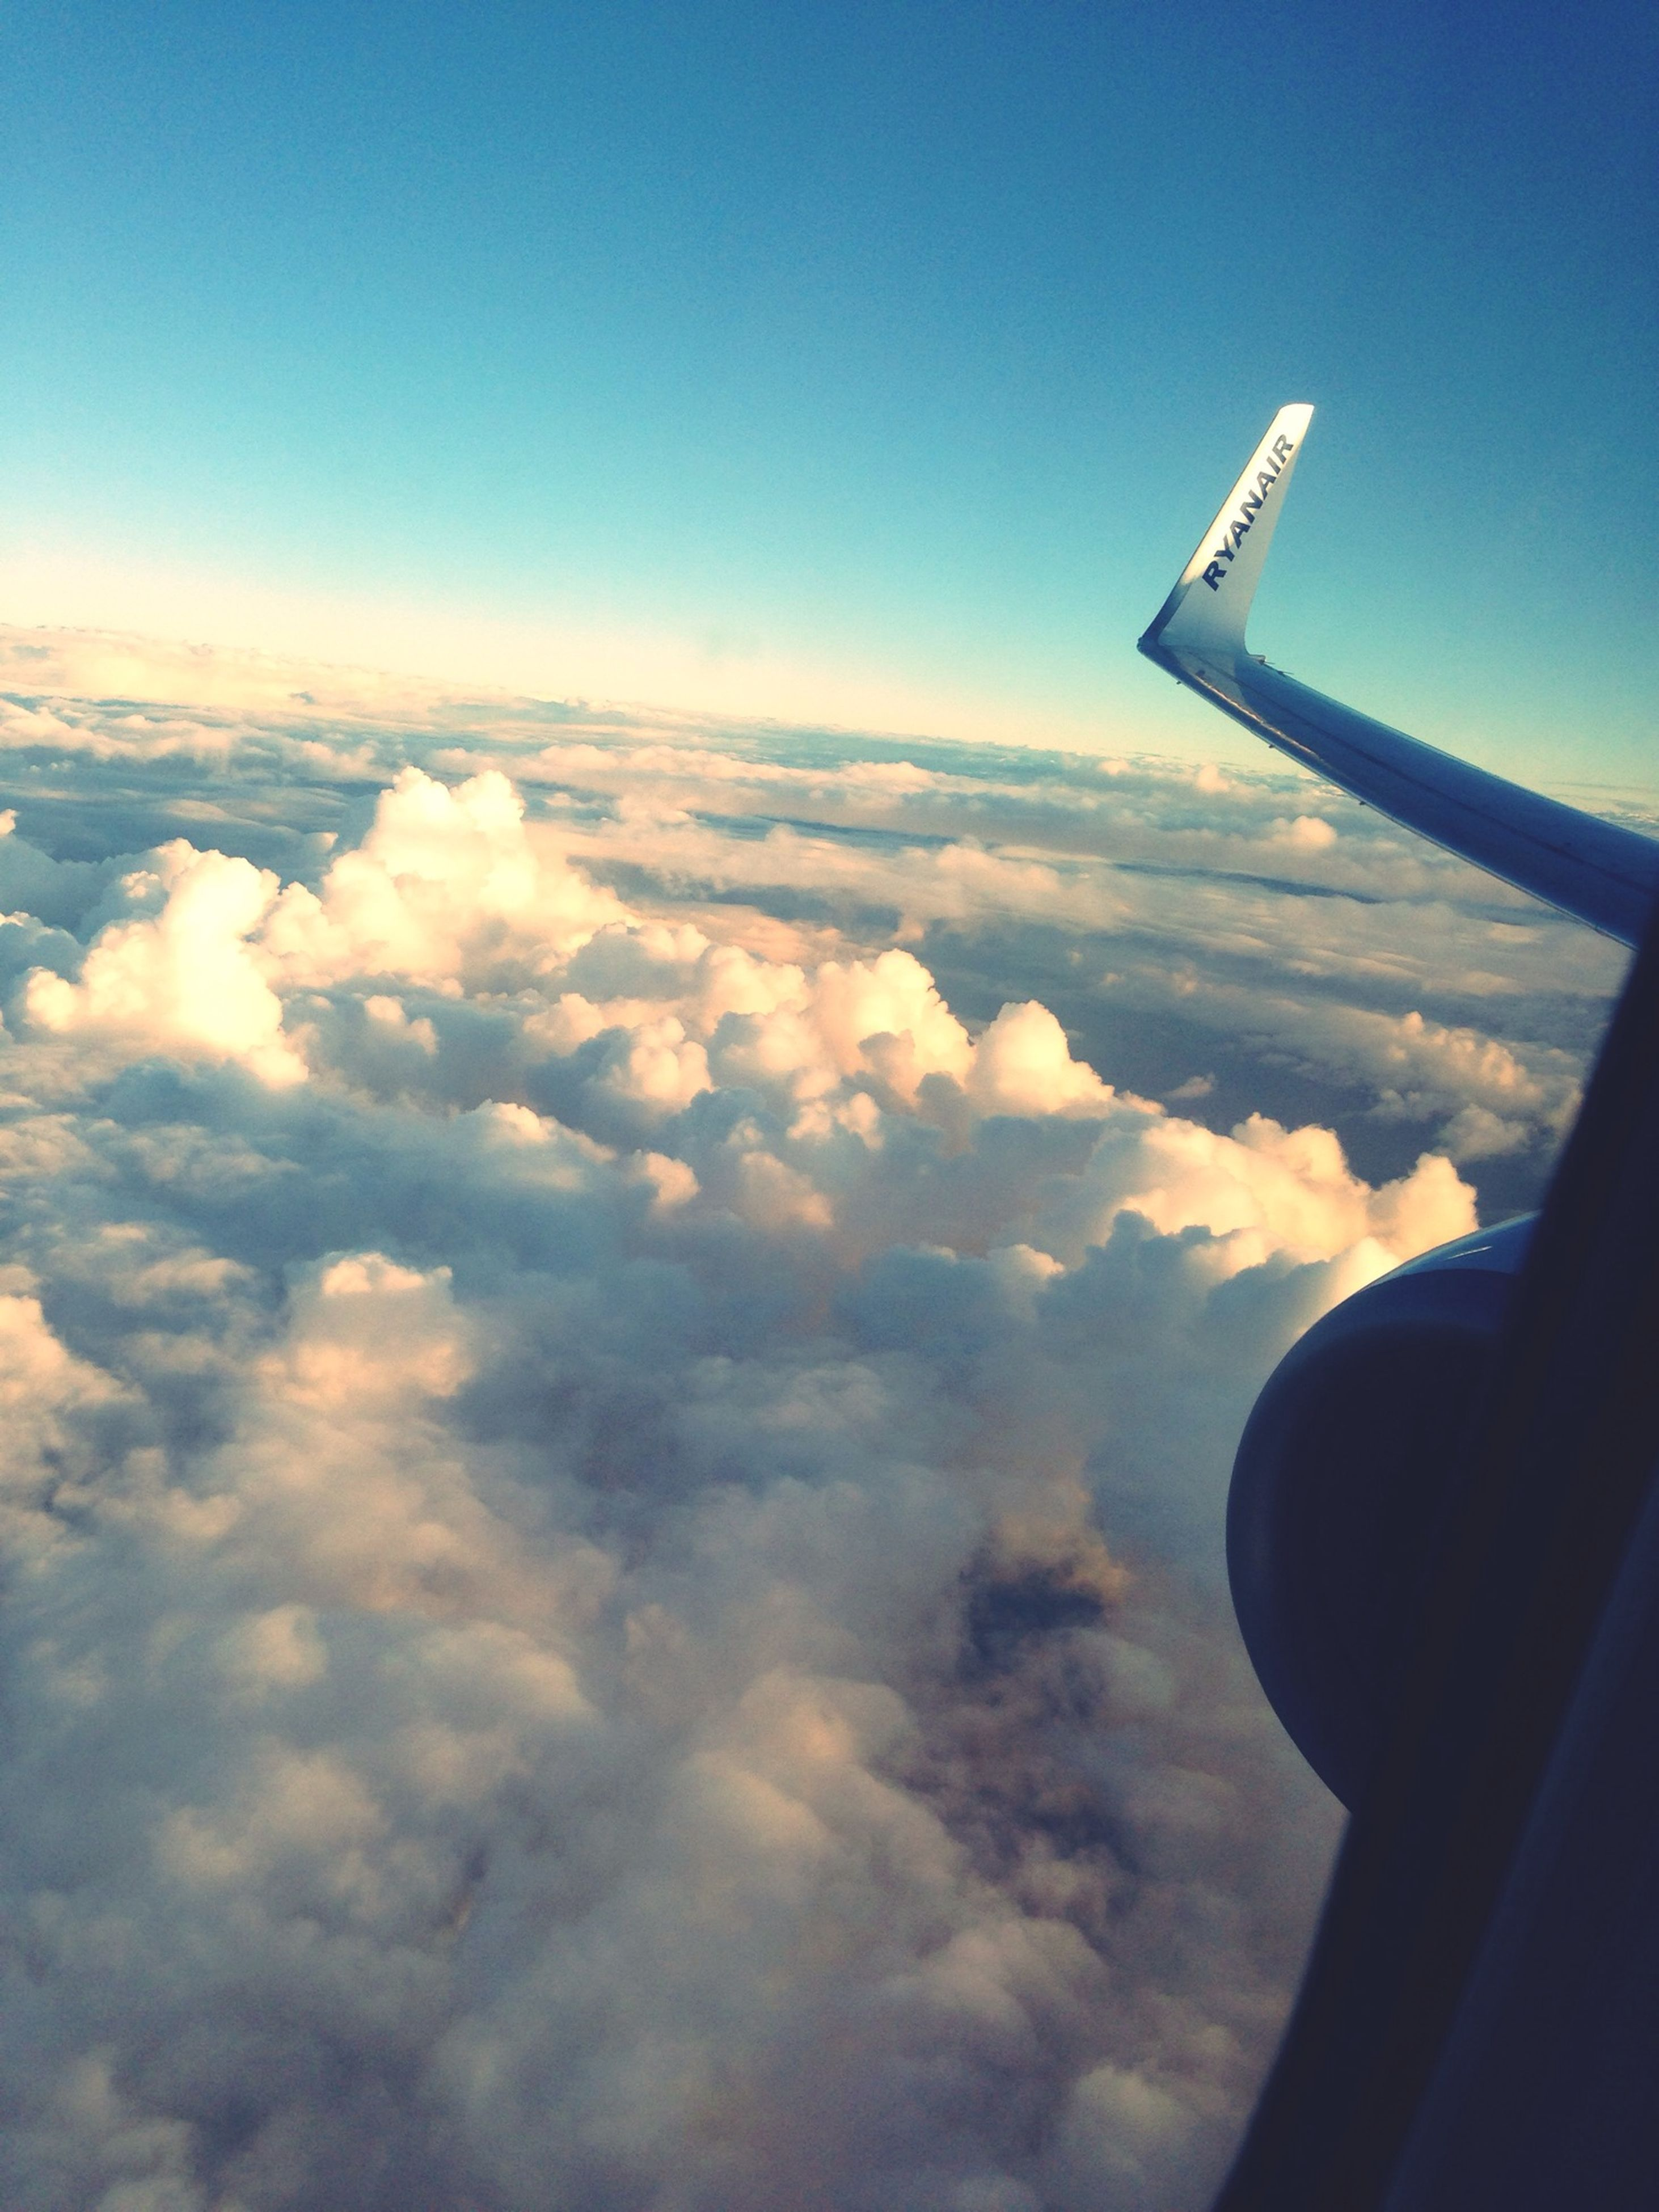 airplane, flying, air vehicle, aircraft wing, sky, transportation, mode of transport, part of, cropped, aerial view, cloud - sky, mid-air, scenics, cloud, journey, travel, cloudscape, blue, beauty in nature, public transportation